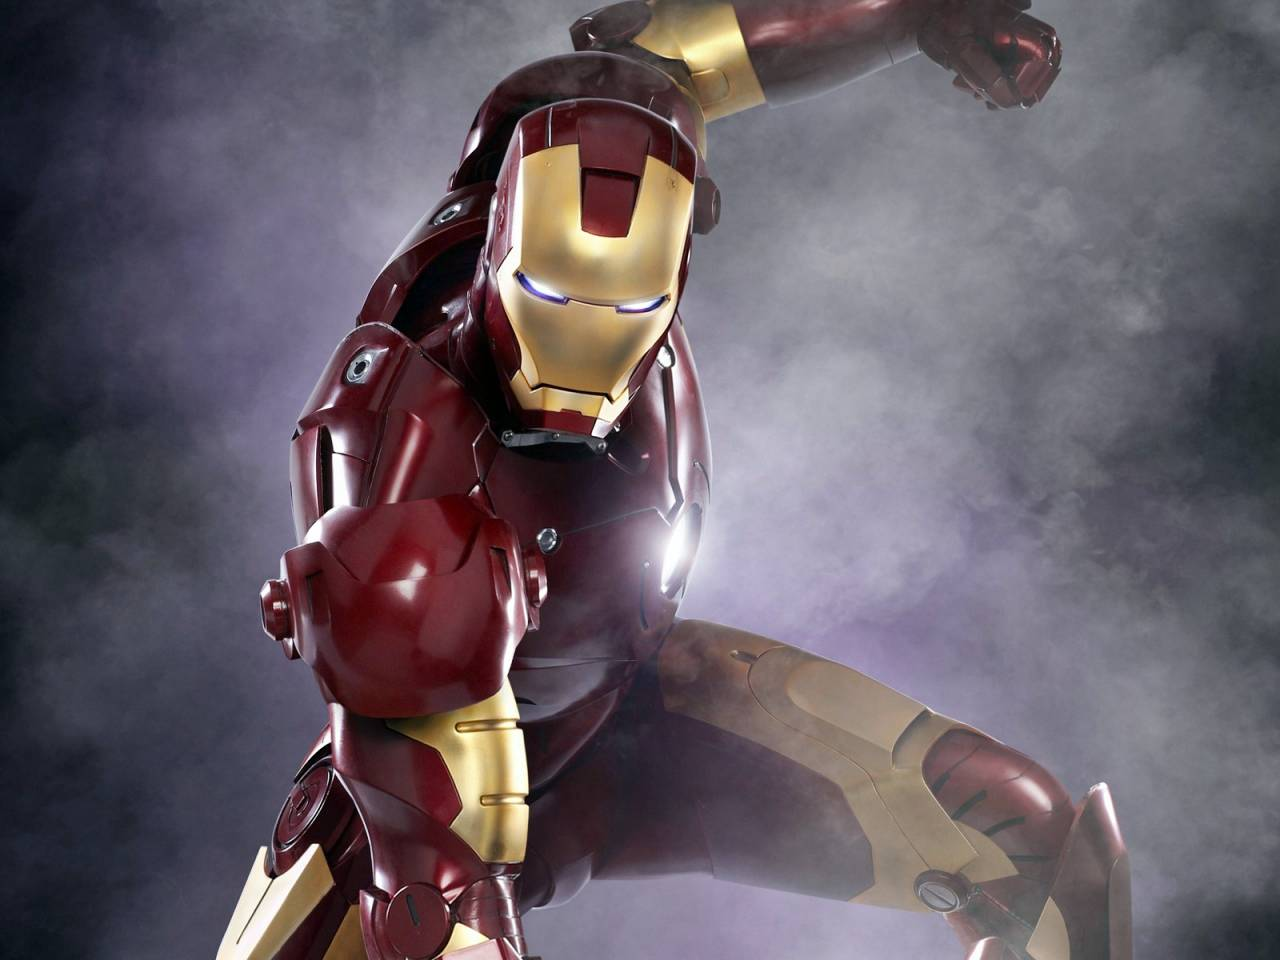 Knicks Iphone Wallpaper Download Iron Man 3 Wallpaper Hd Free Download Gallery